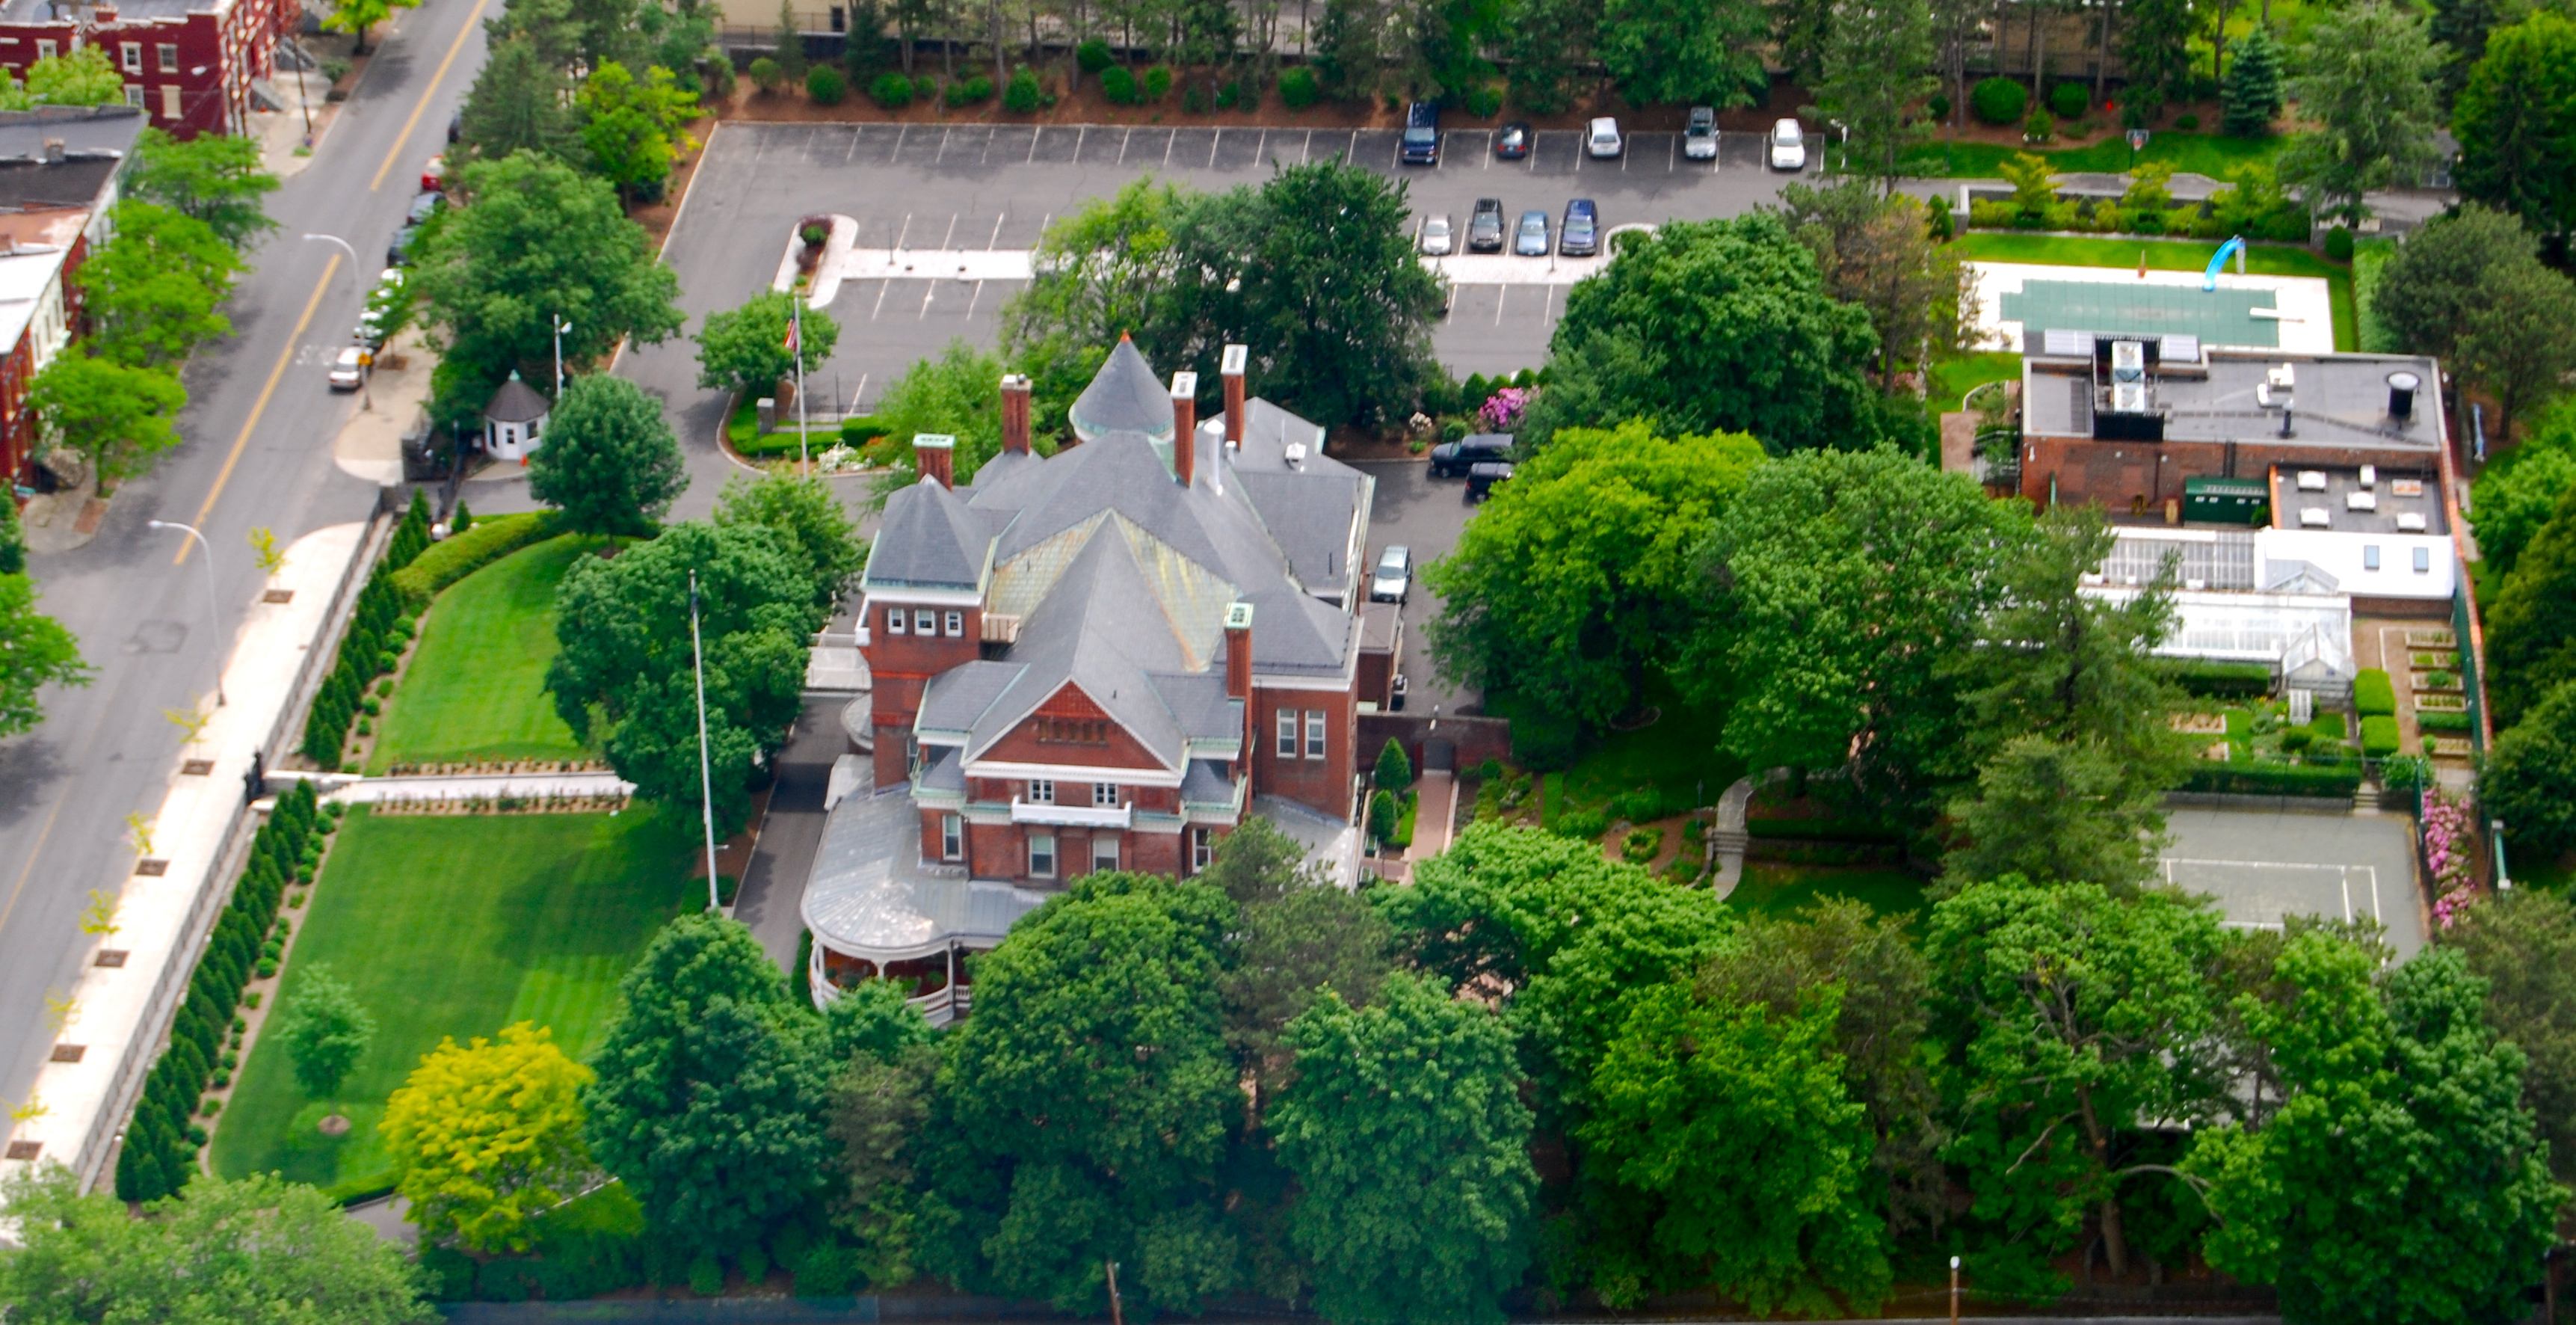 This aerial shot reveals how large the mansion and compound have become, to include an outdoor pool and tennis court.